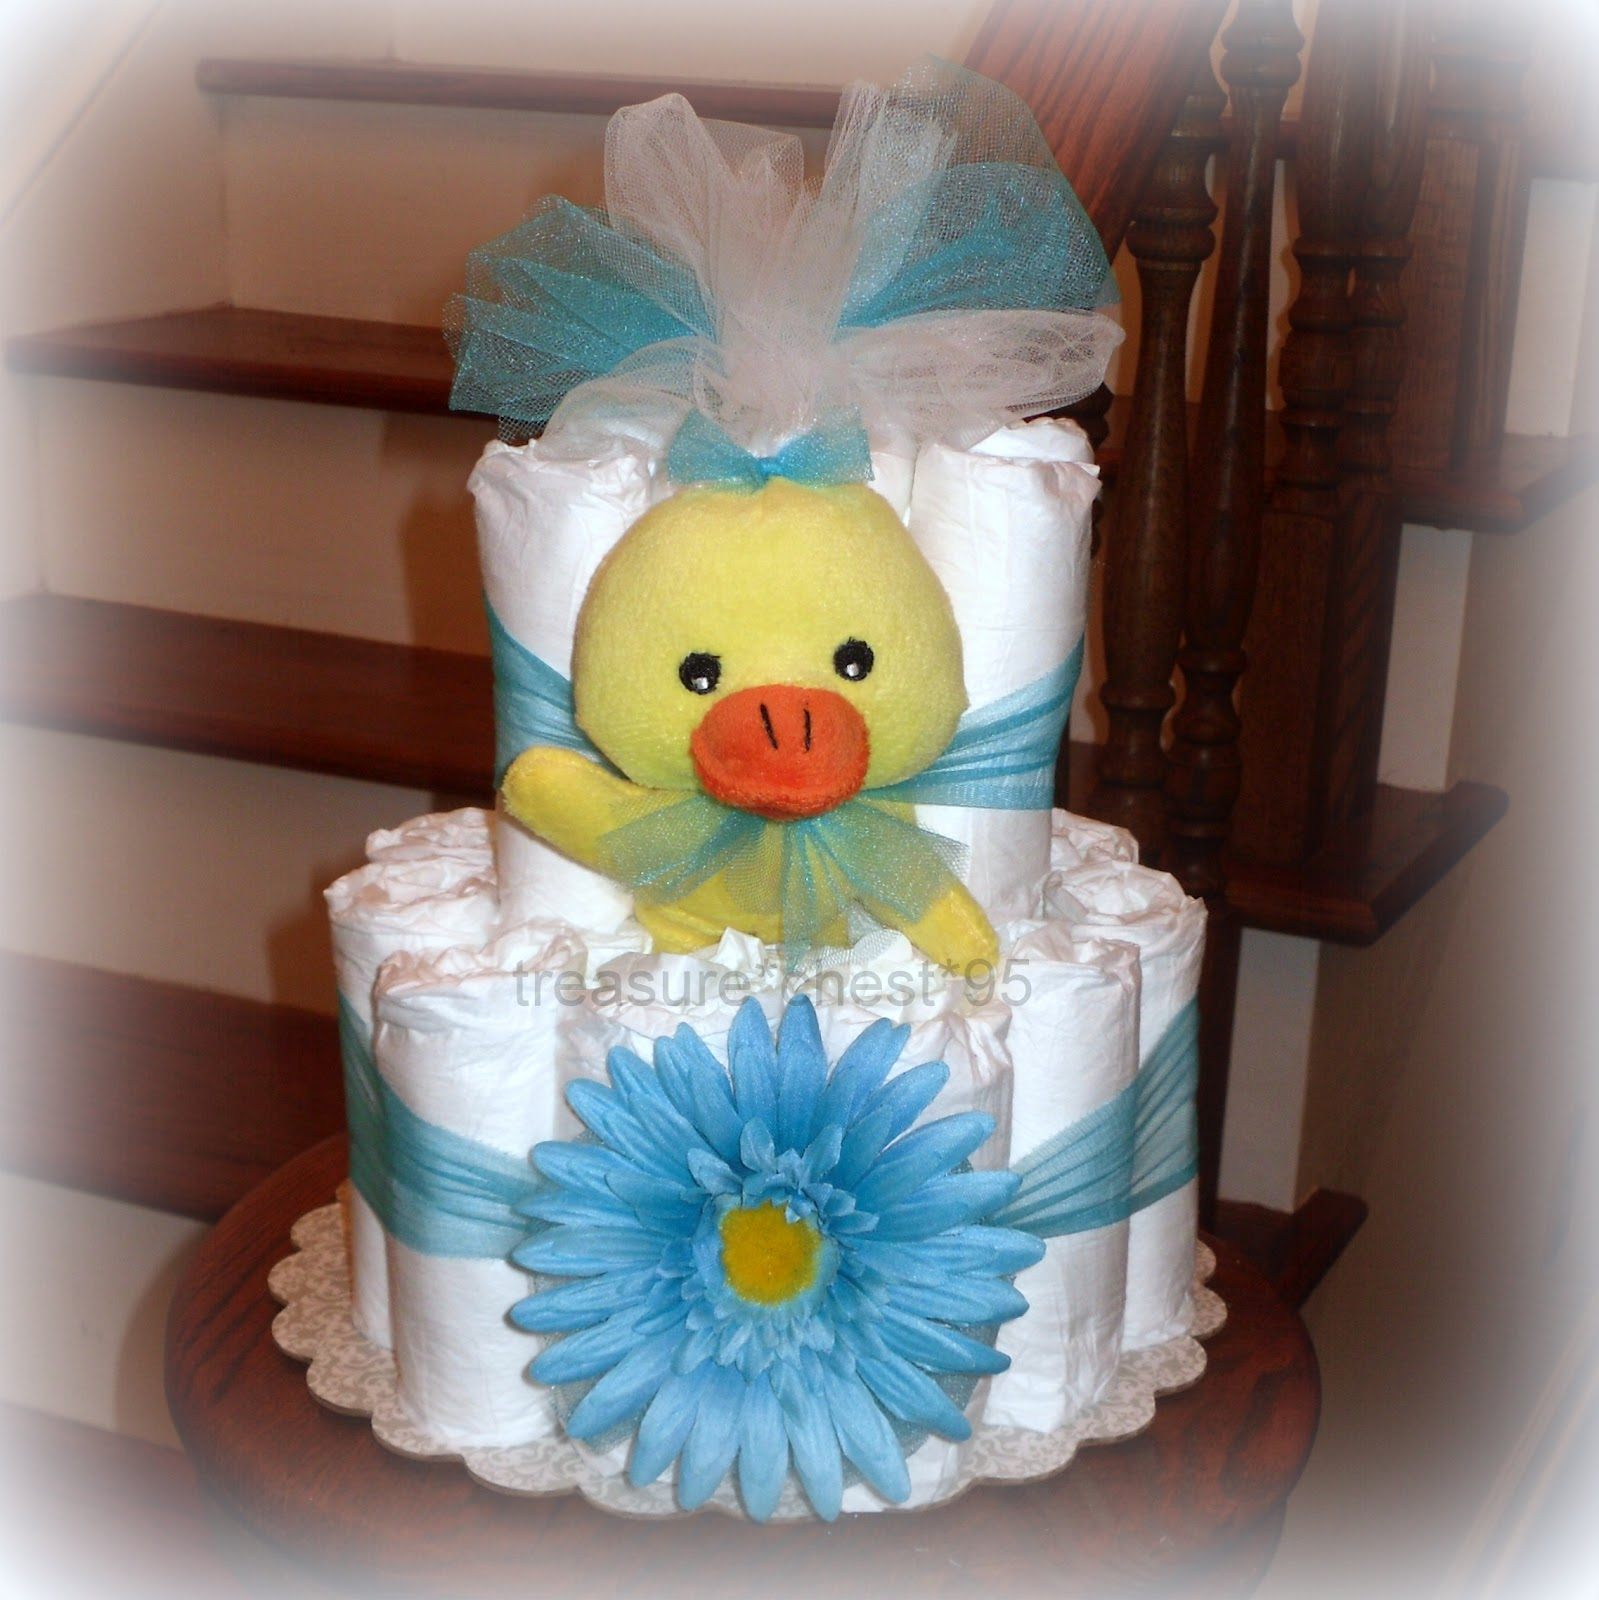 Diaper Cake Centerpiece For Baby Shower : *Daisy Duck* Diaper Cake Baby Shower Centerpiece ...